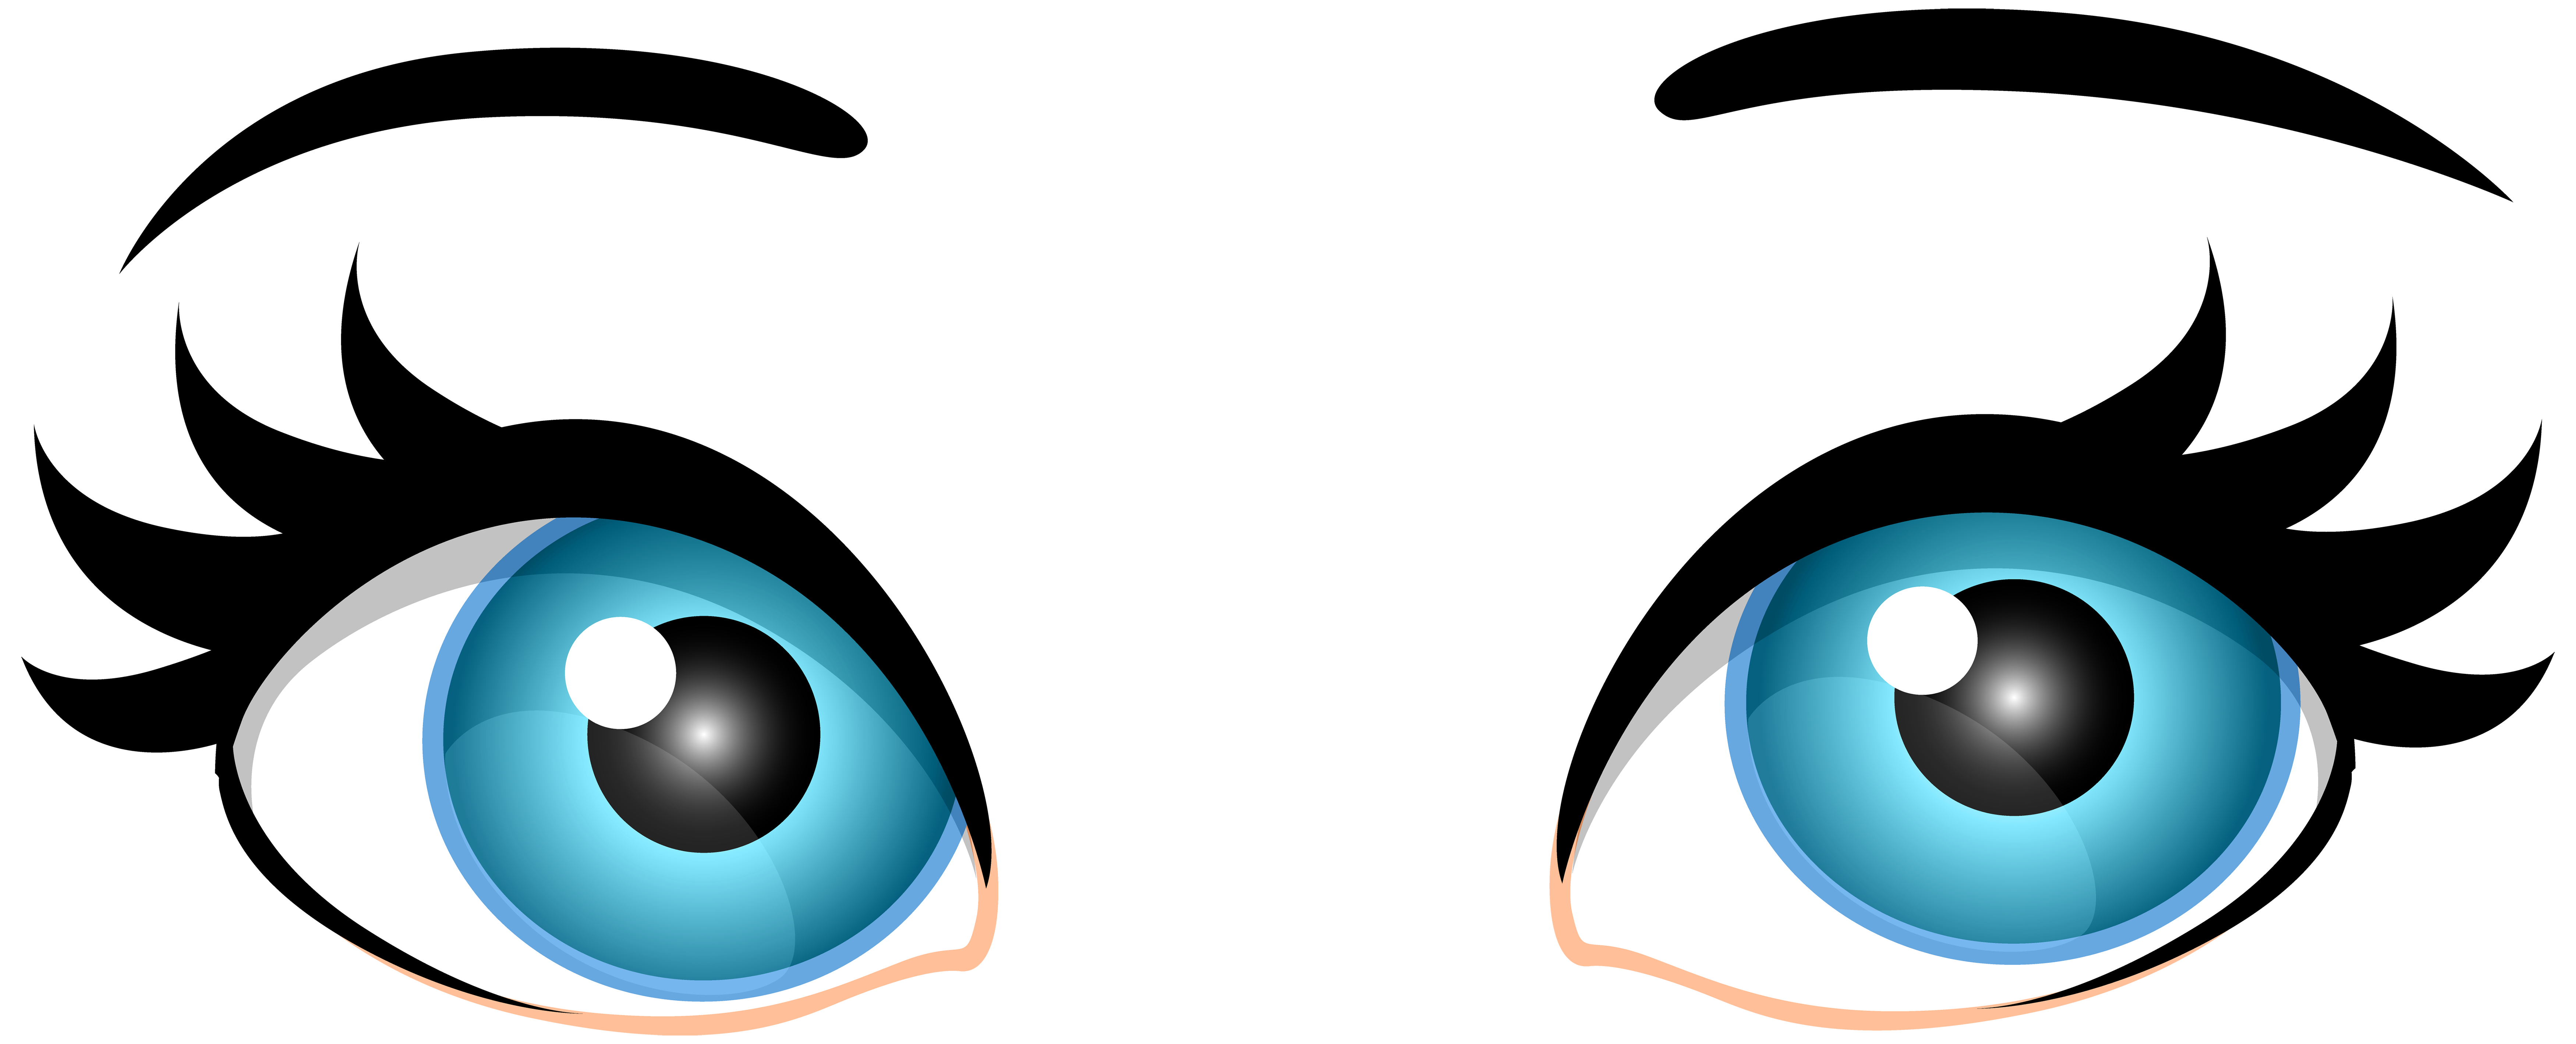 Eyes Clipart at GetDrawings | Free download